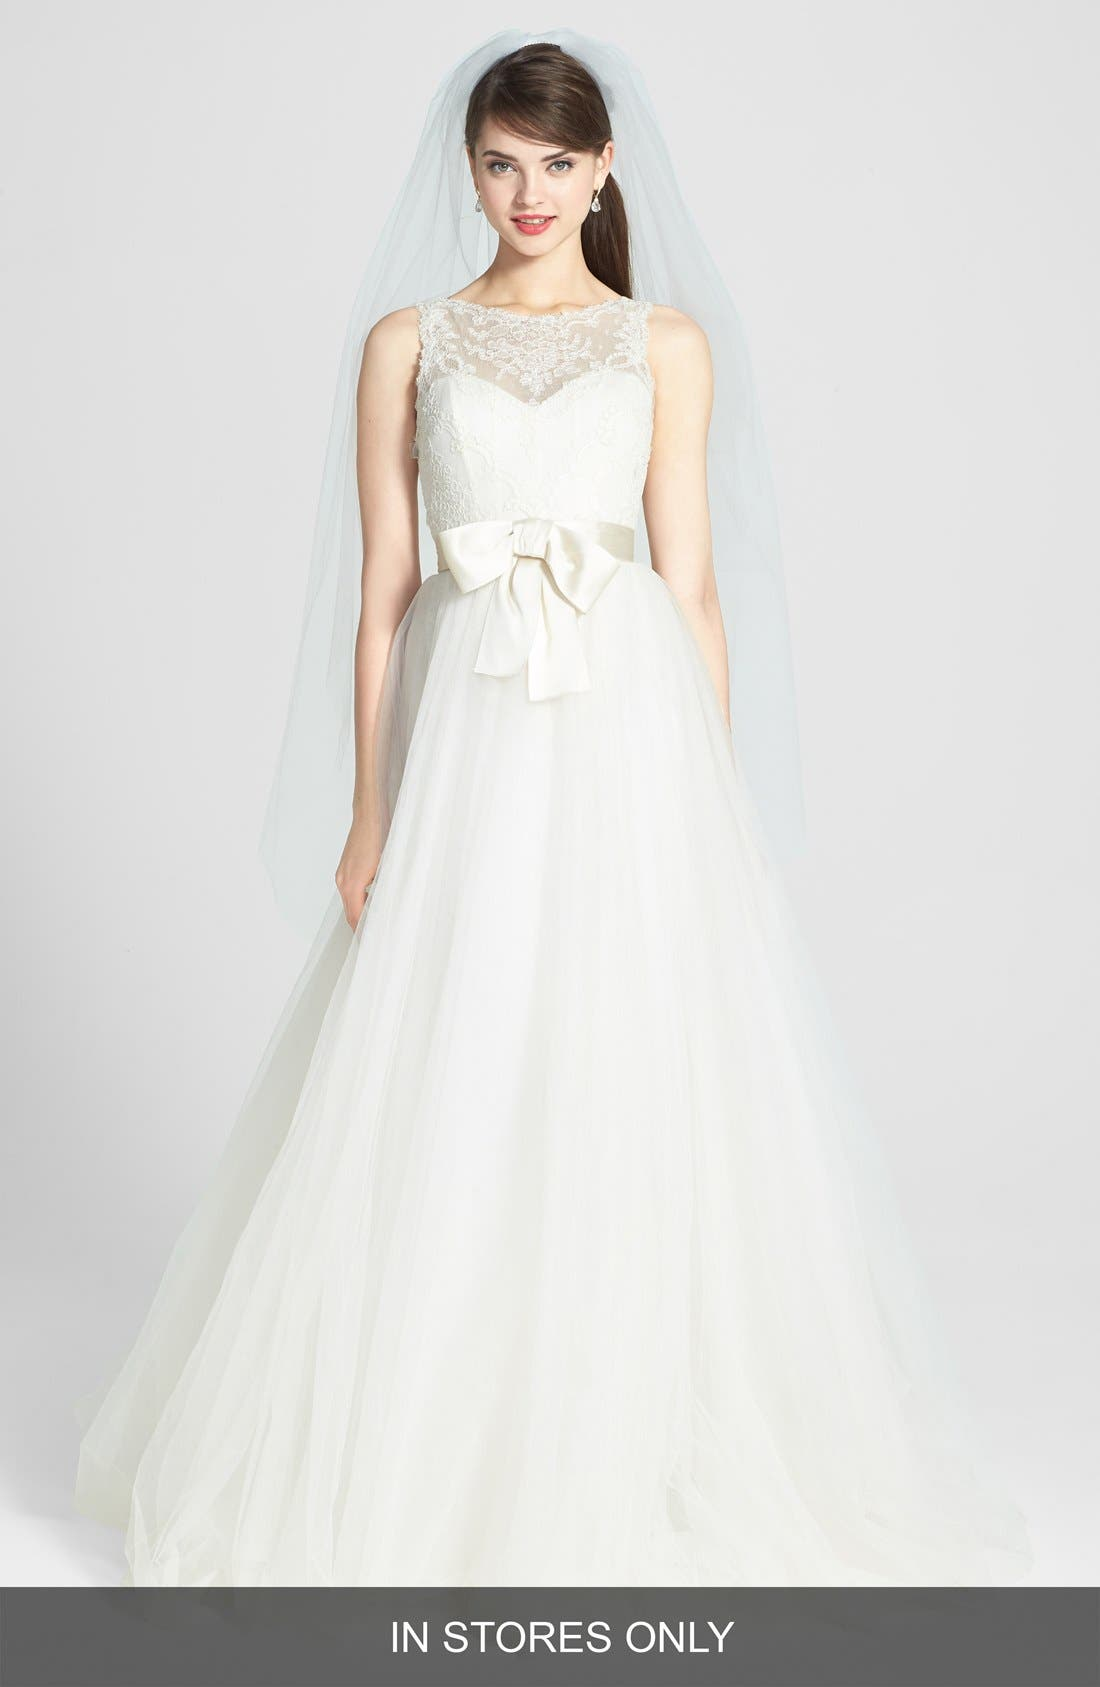 Alternate Image 1 Selected - Amsale 'Quinn' French Lace Illusion Bodice Tulle Wedding Dress (In Stores Only)